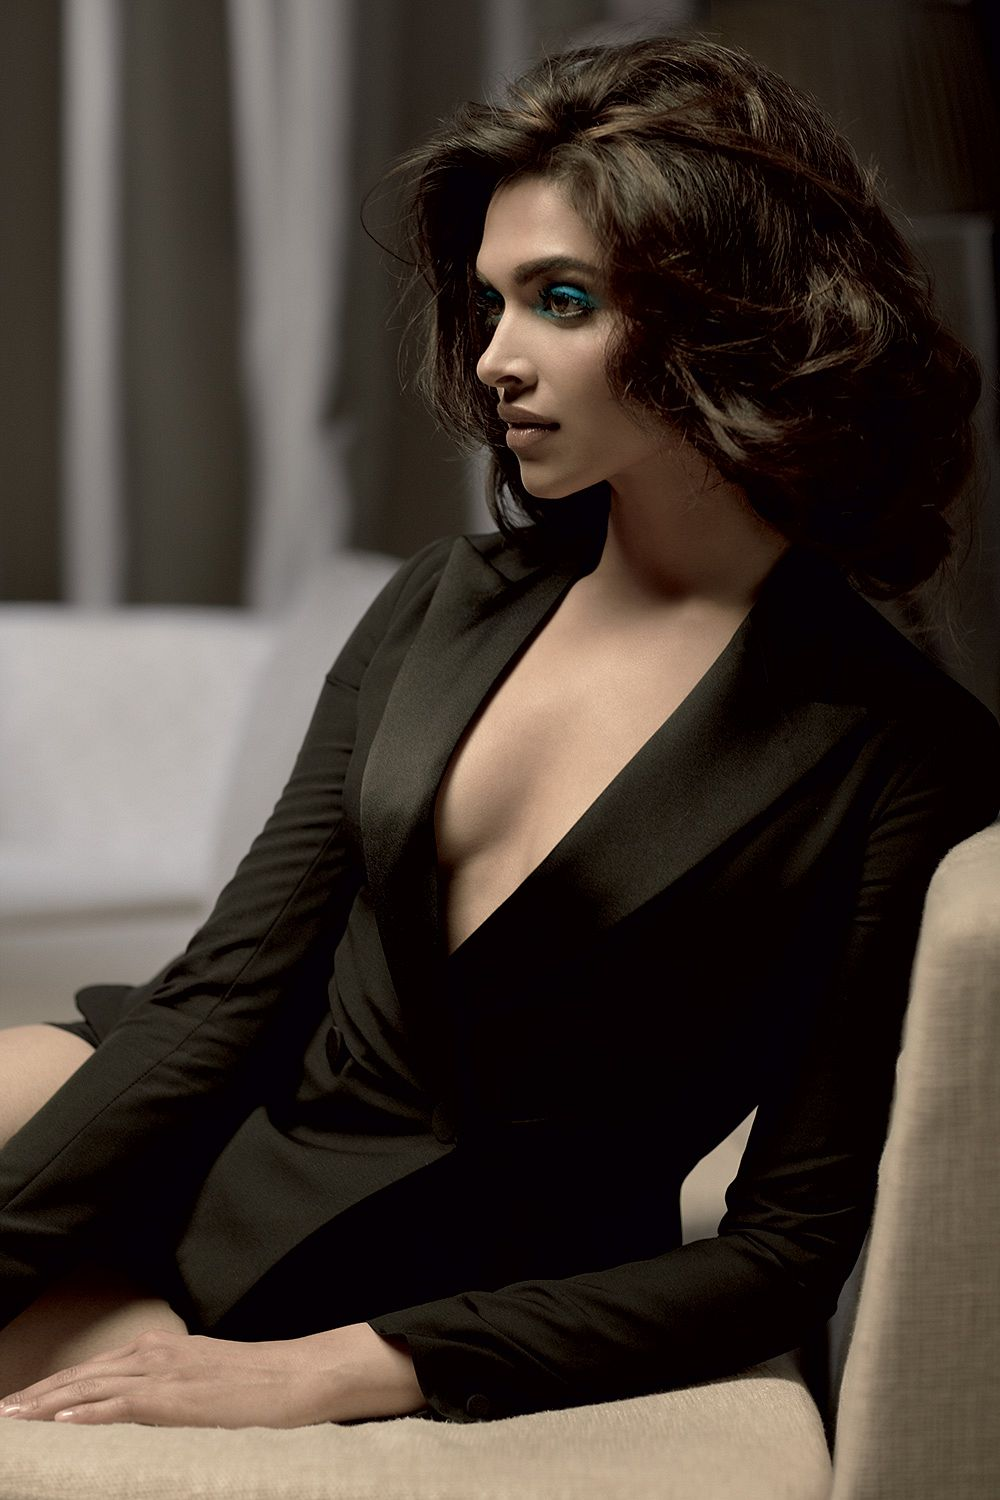 Deepika Padukone Hot And Sexy Hd Pics South Indian